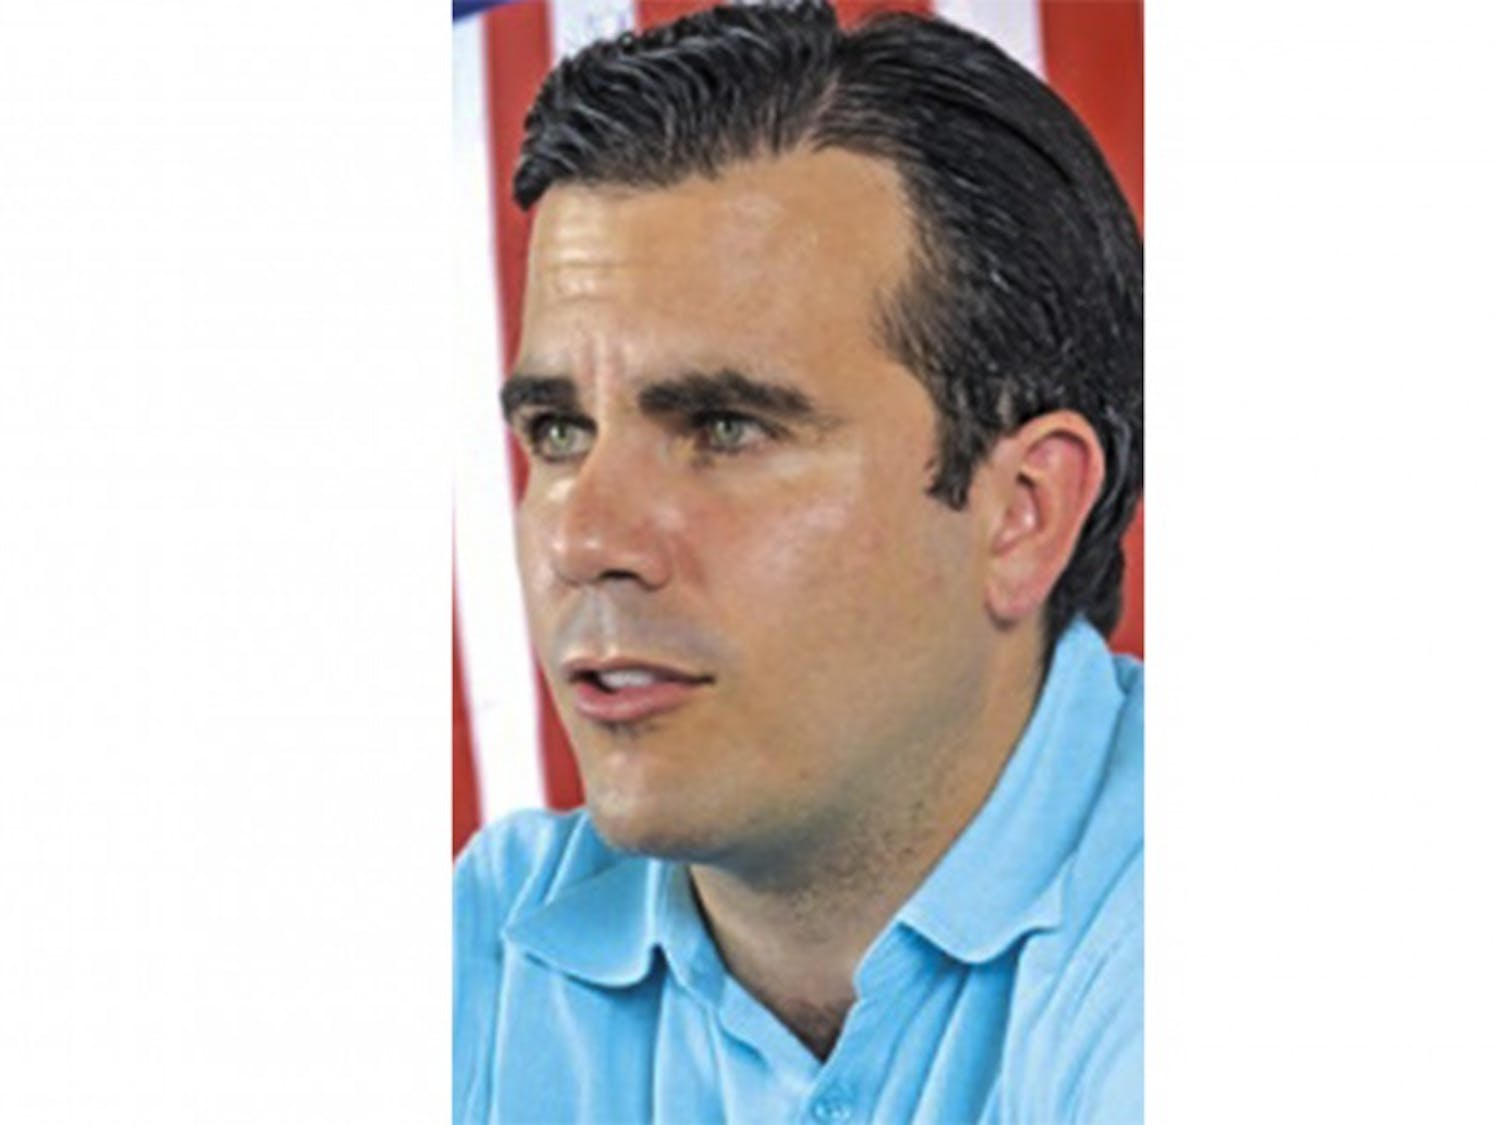 RicardoRossellónow serves as governor of the Commonwealth of Puerto Rico, after spending time at Duke researching neurobiology and stem cells.